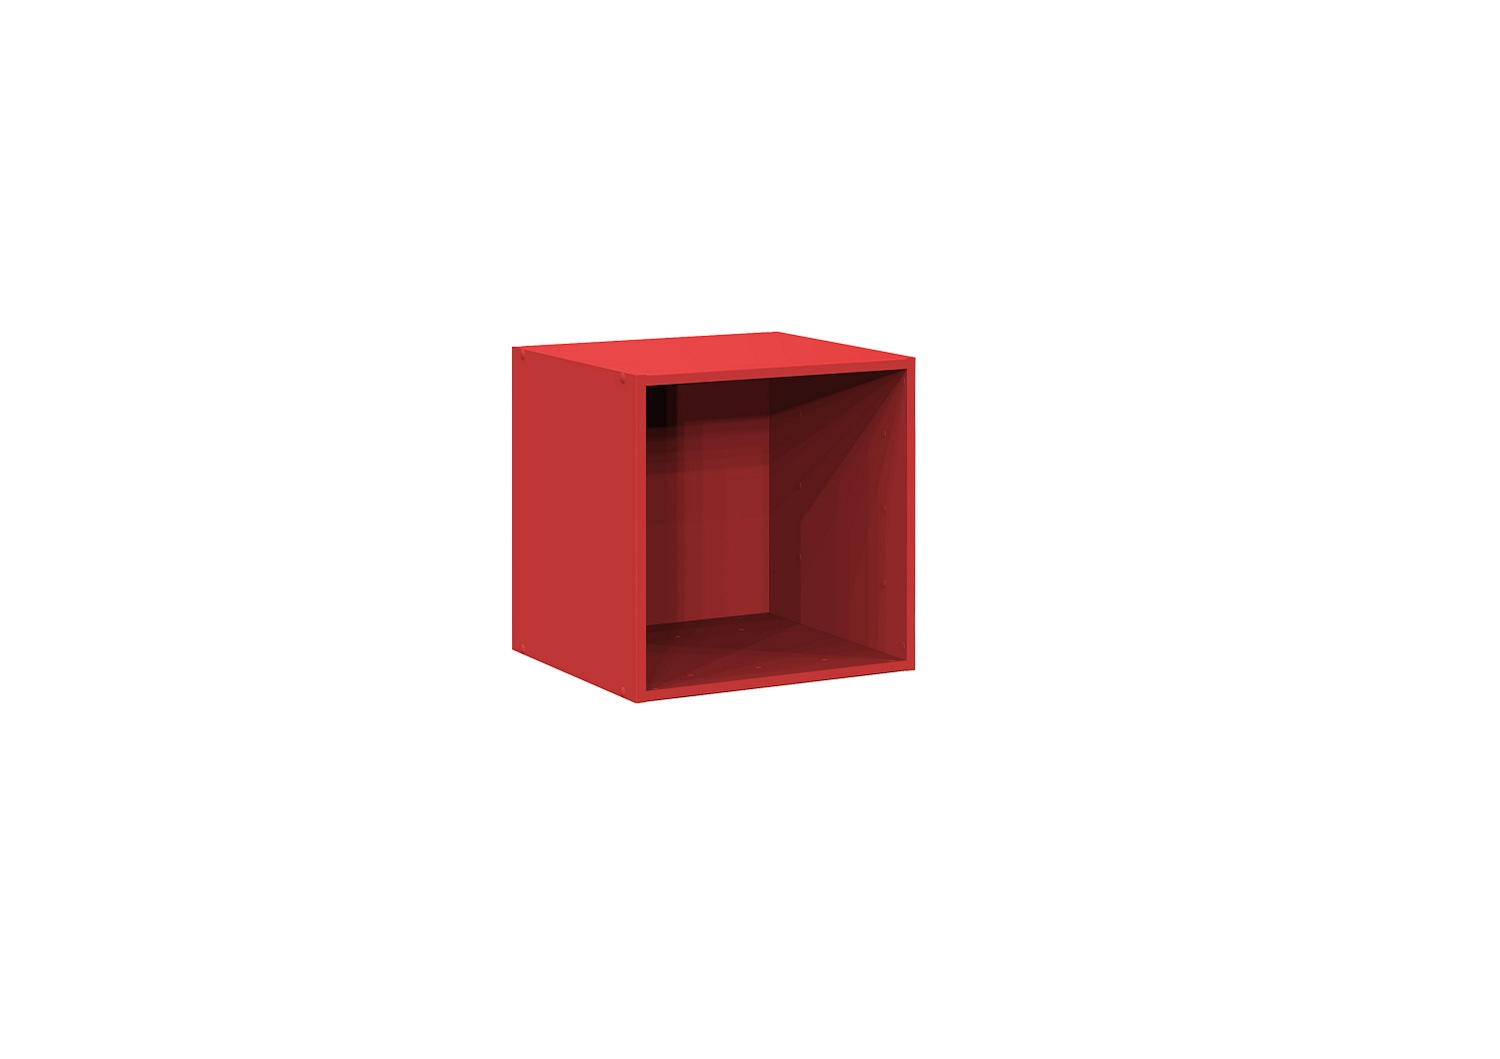 Bilrich Storage Furniture - Multi Kaz 1x1 Cube Red